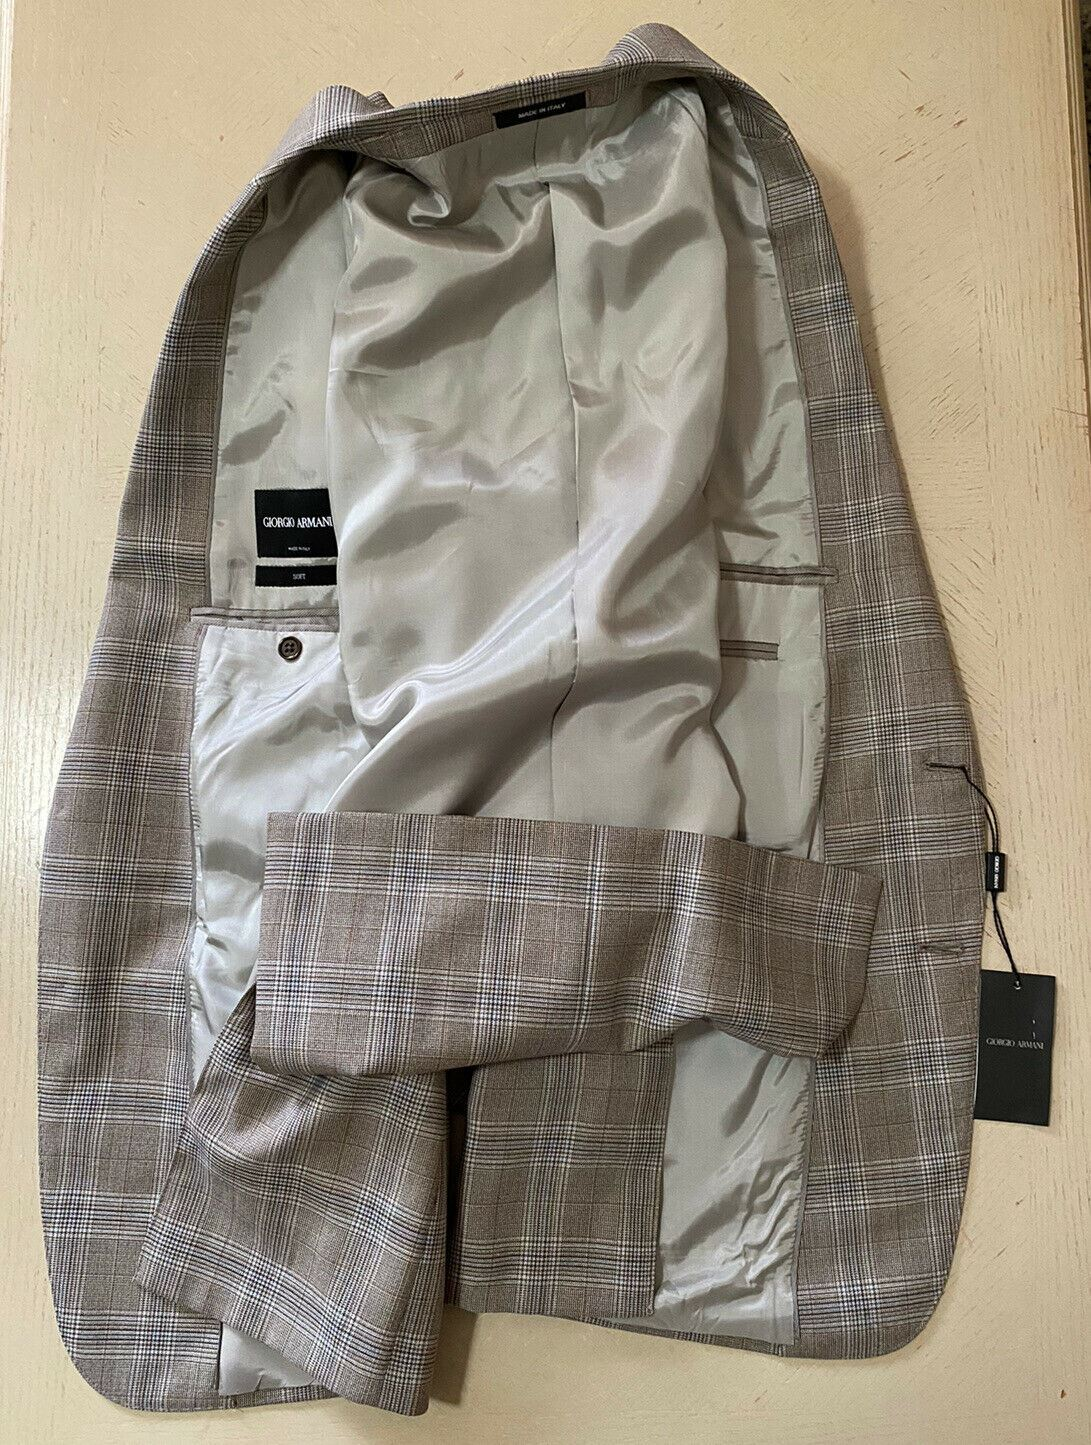 NWT $2395 Giorgio Armani Mens Sport Coat Jacket Blazer LT Brown 42 US/52 Eu Ita